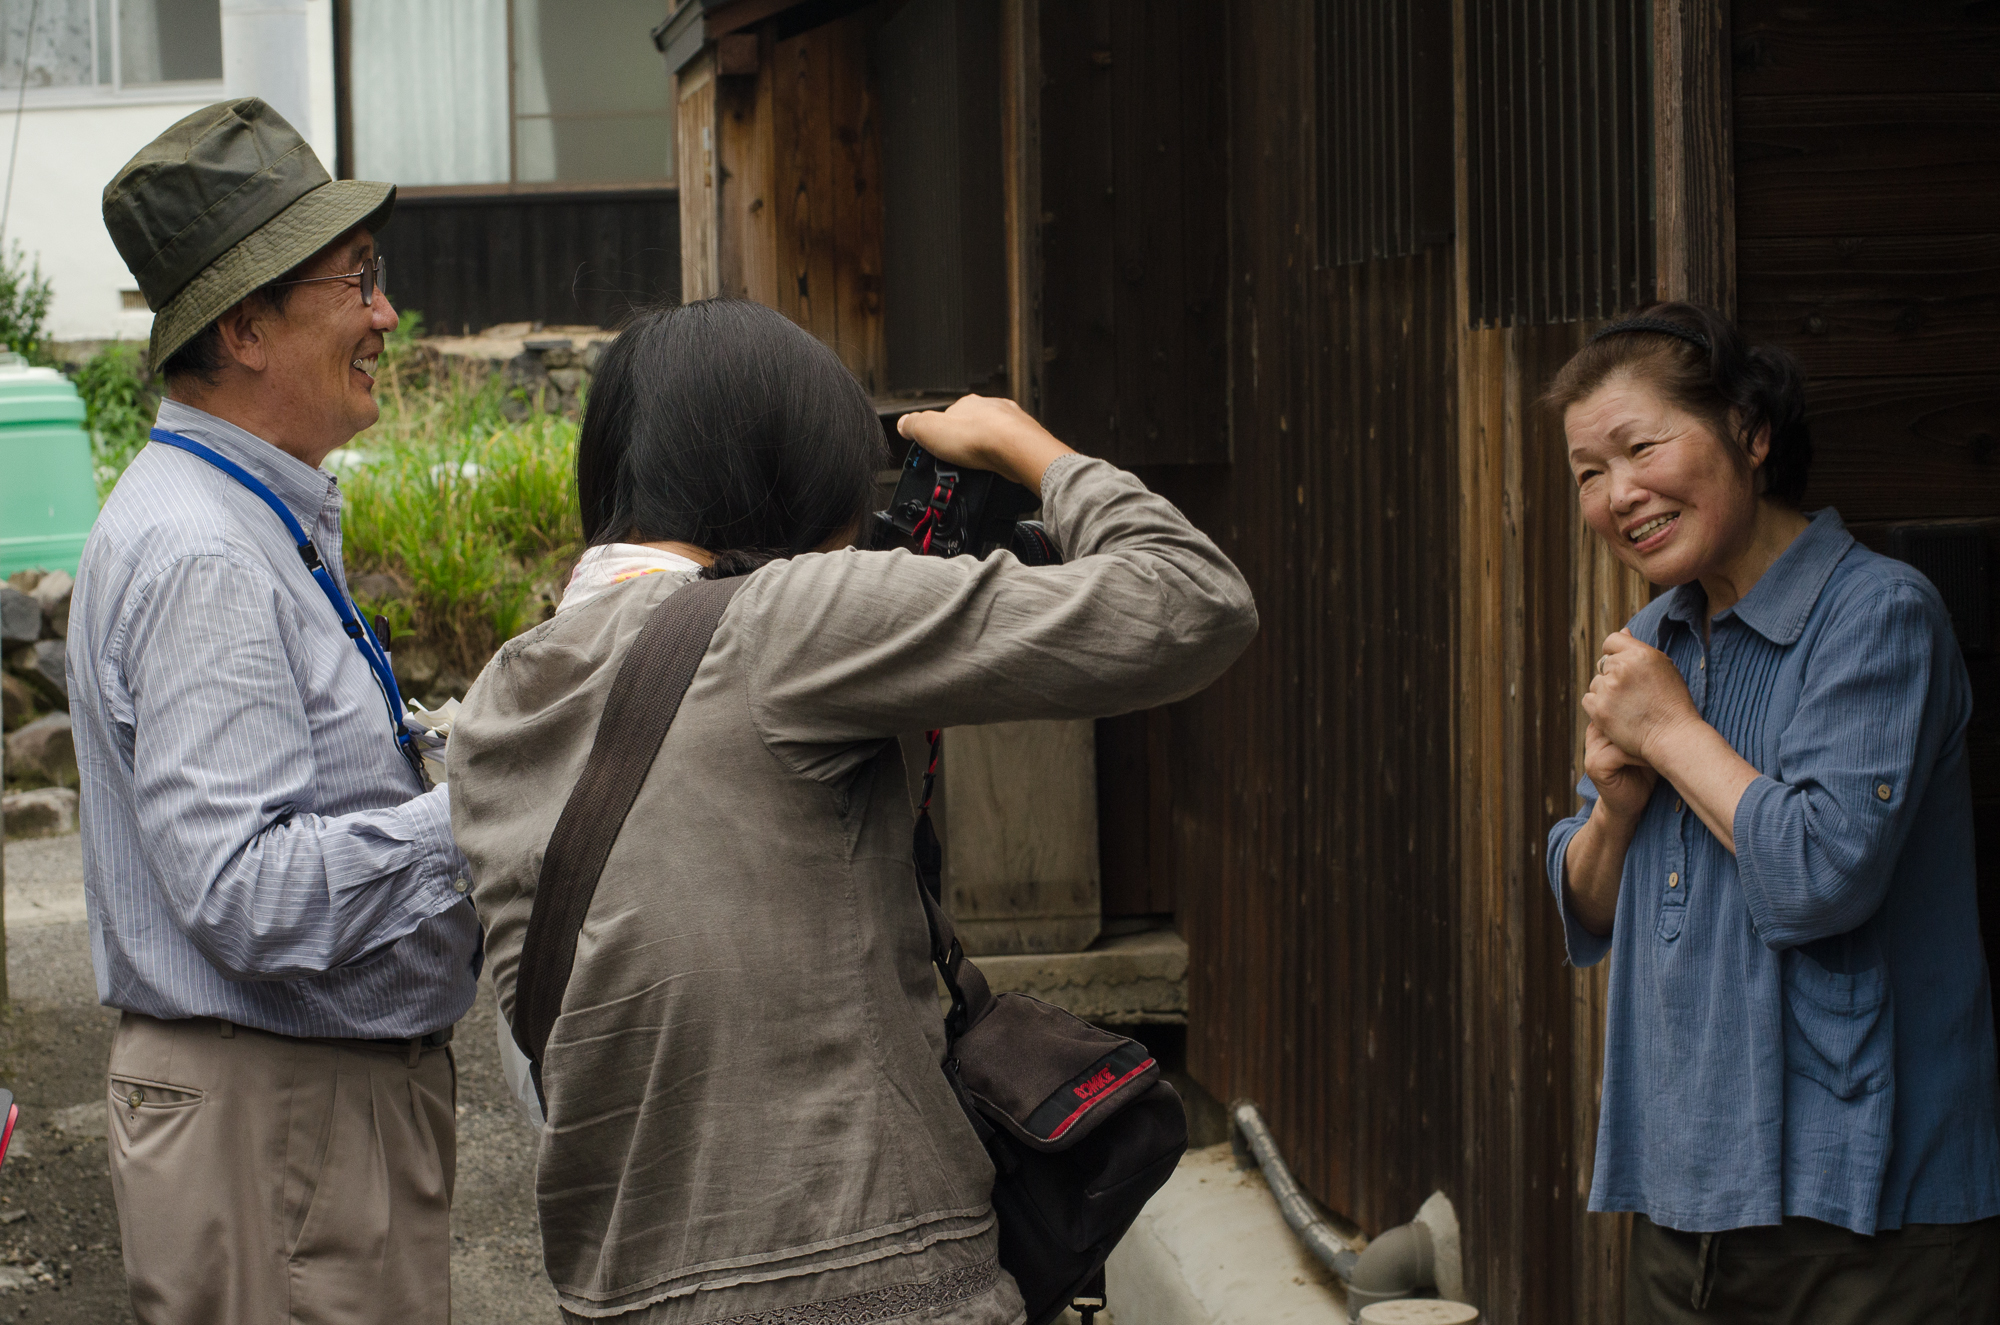 Photographer Suhee Kang taking a portrait of one of the Megijima villagers